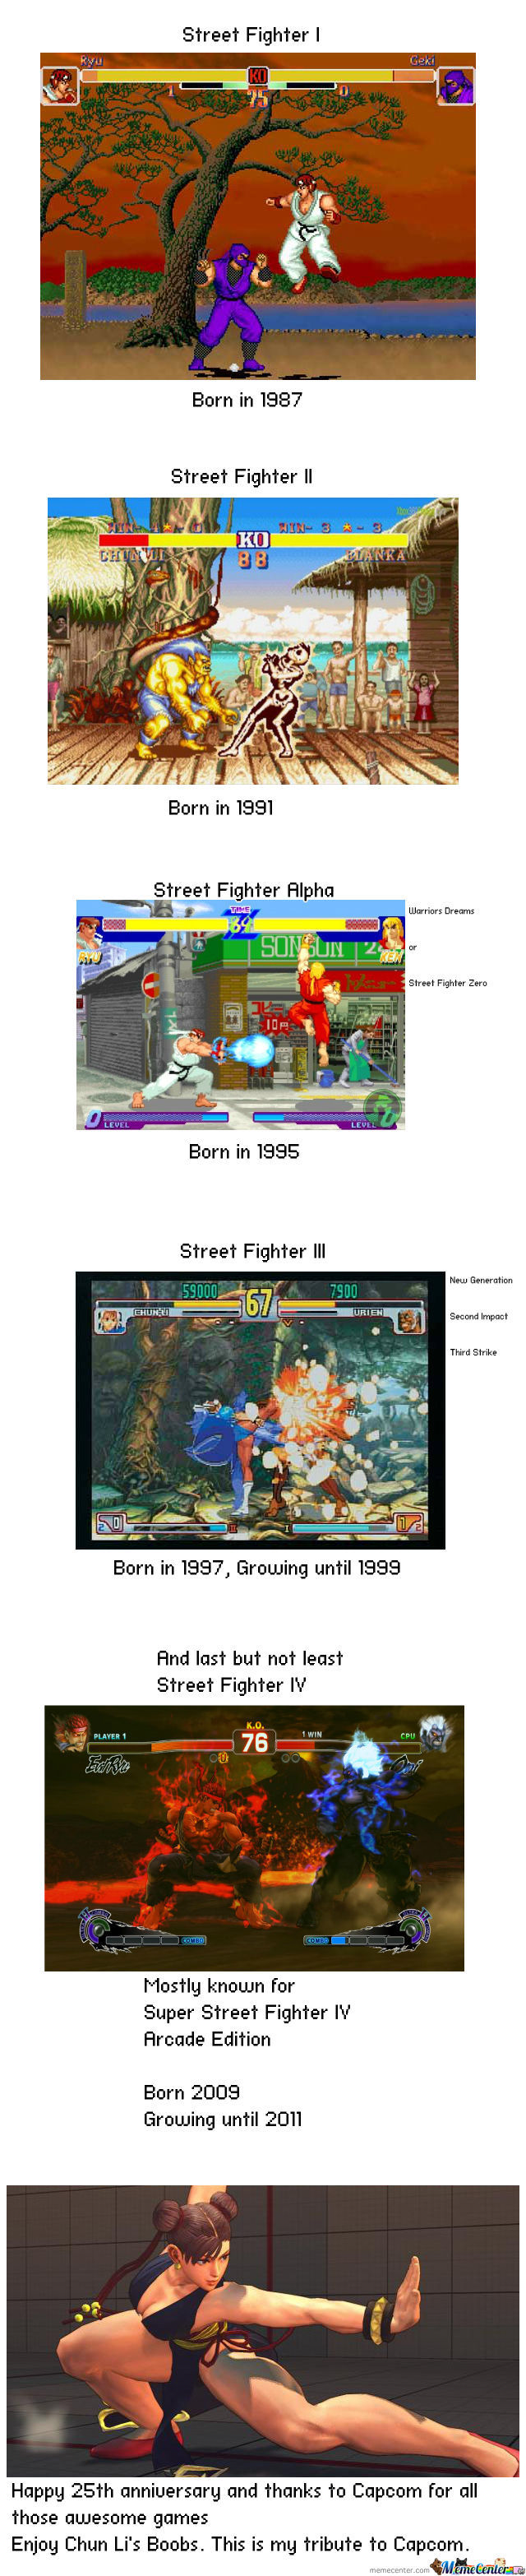 25 Years Of Street Fighter